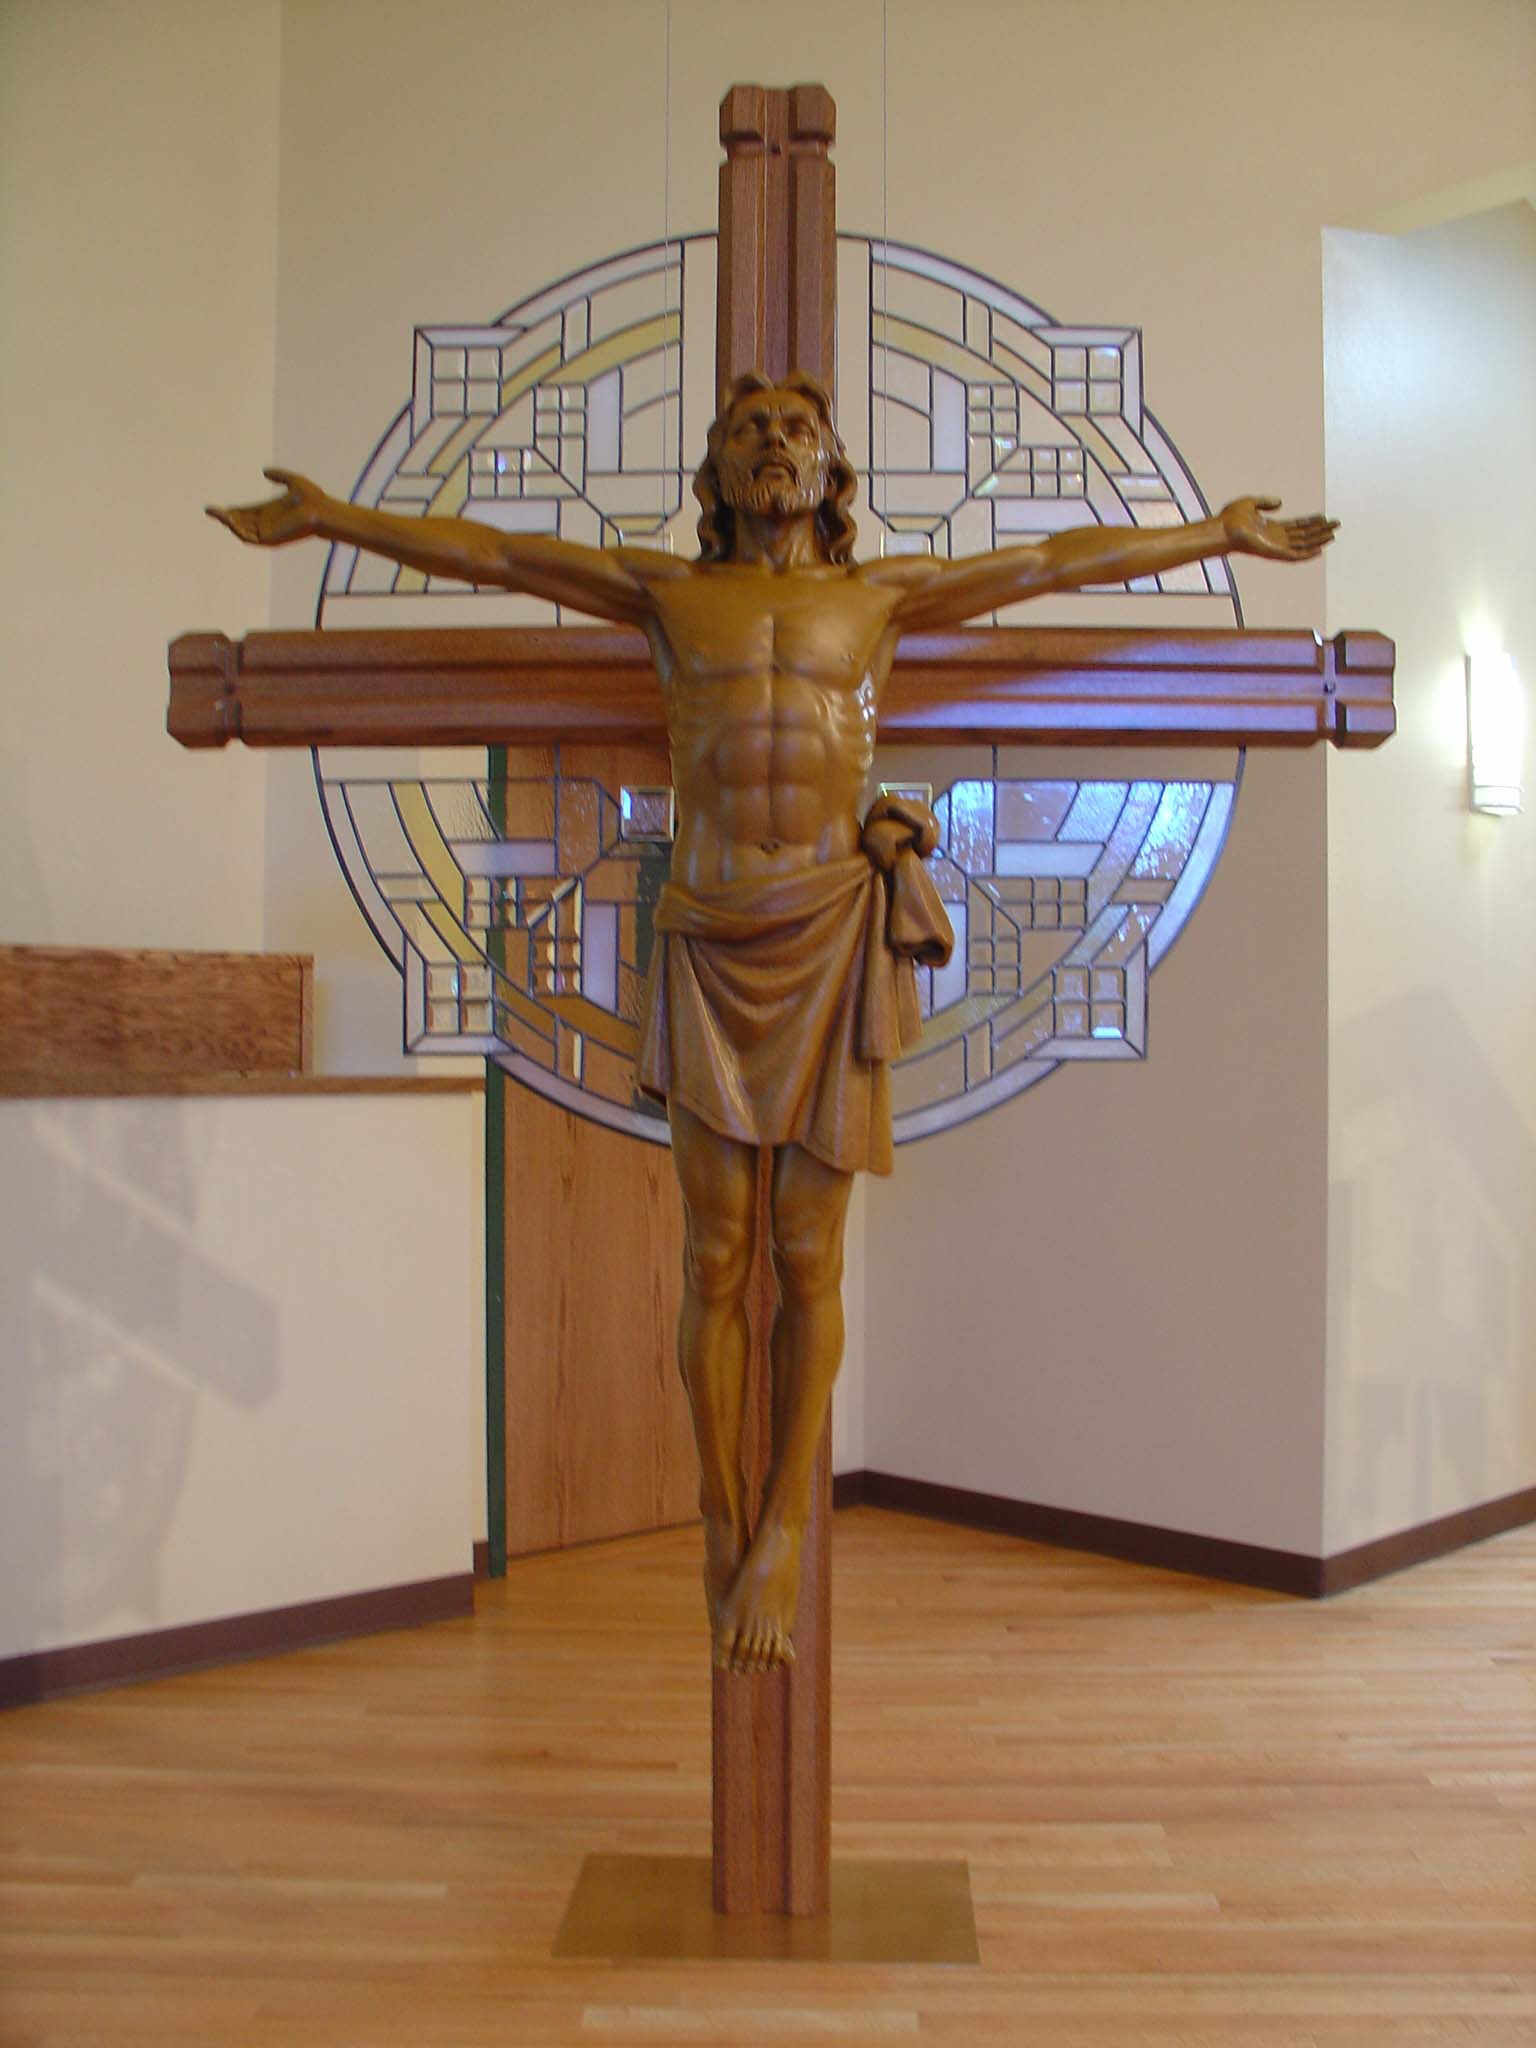 CROSS+MON.+ST.MARY+MAG.-1658022243-O.jpg